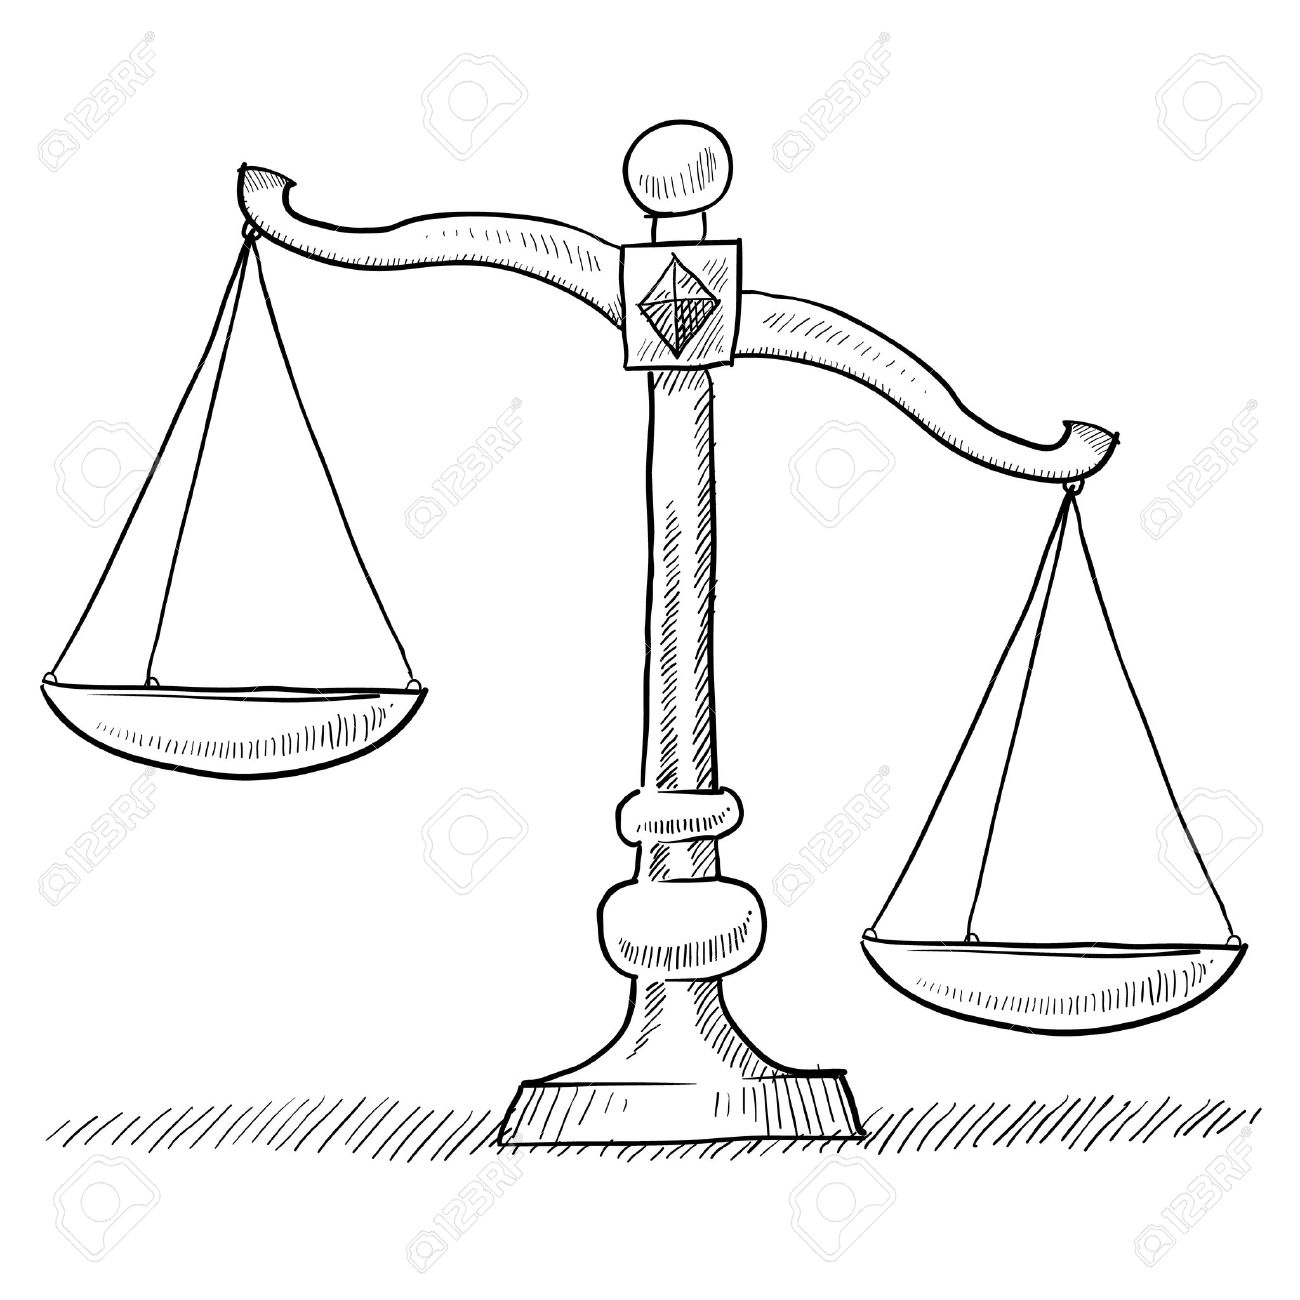 1300x1300 Doodle Style Tipped Or Unbalanced Scales Of Justice Illustration